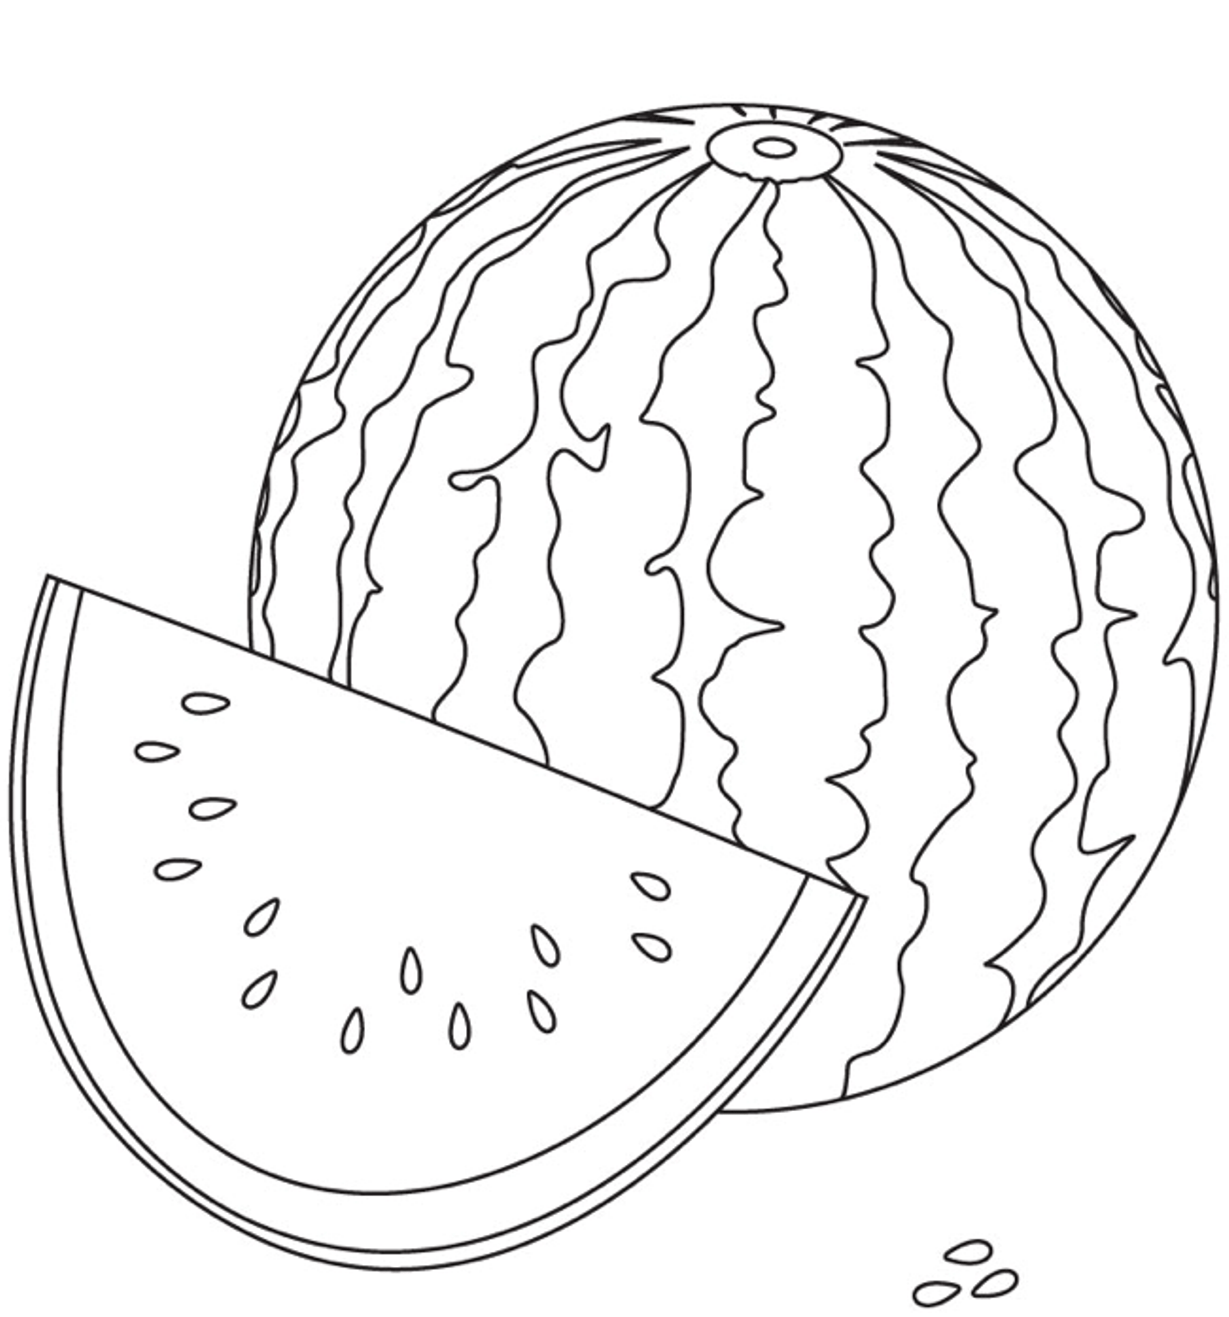 Watermelon Coloring Page Pictures 13 In Online With